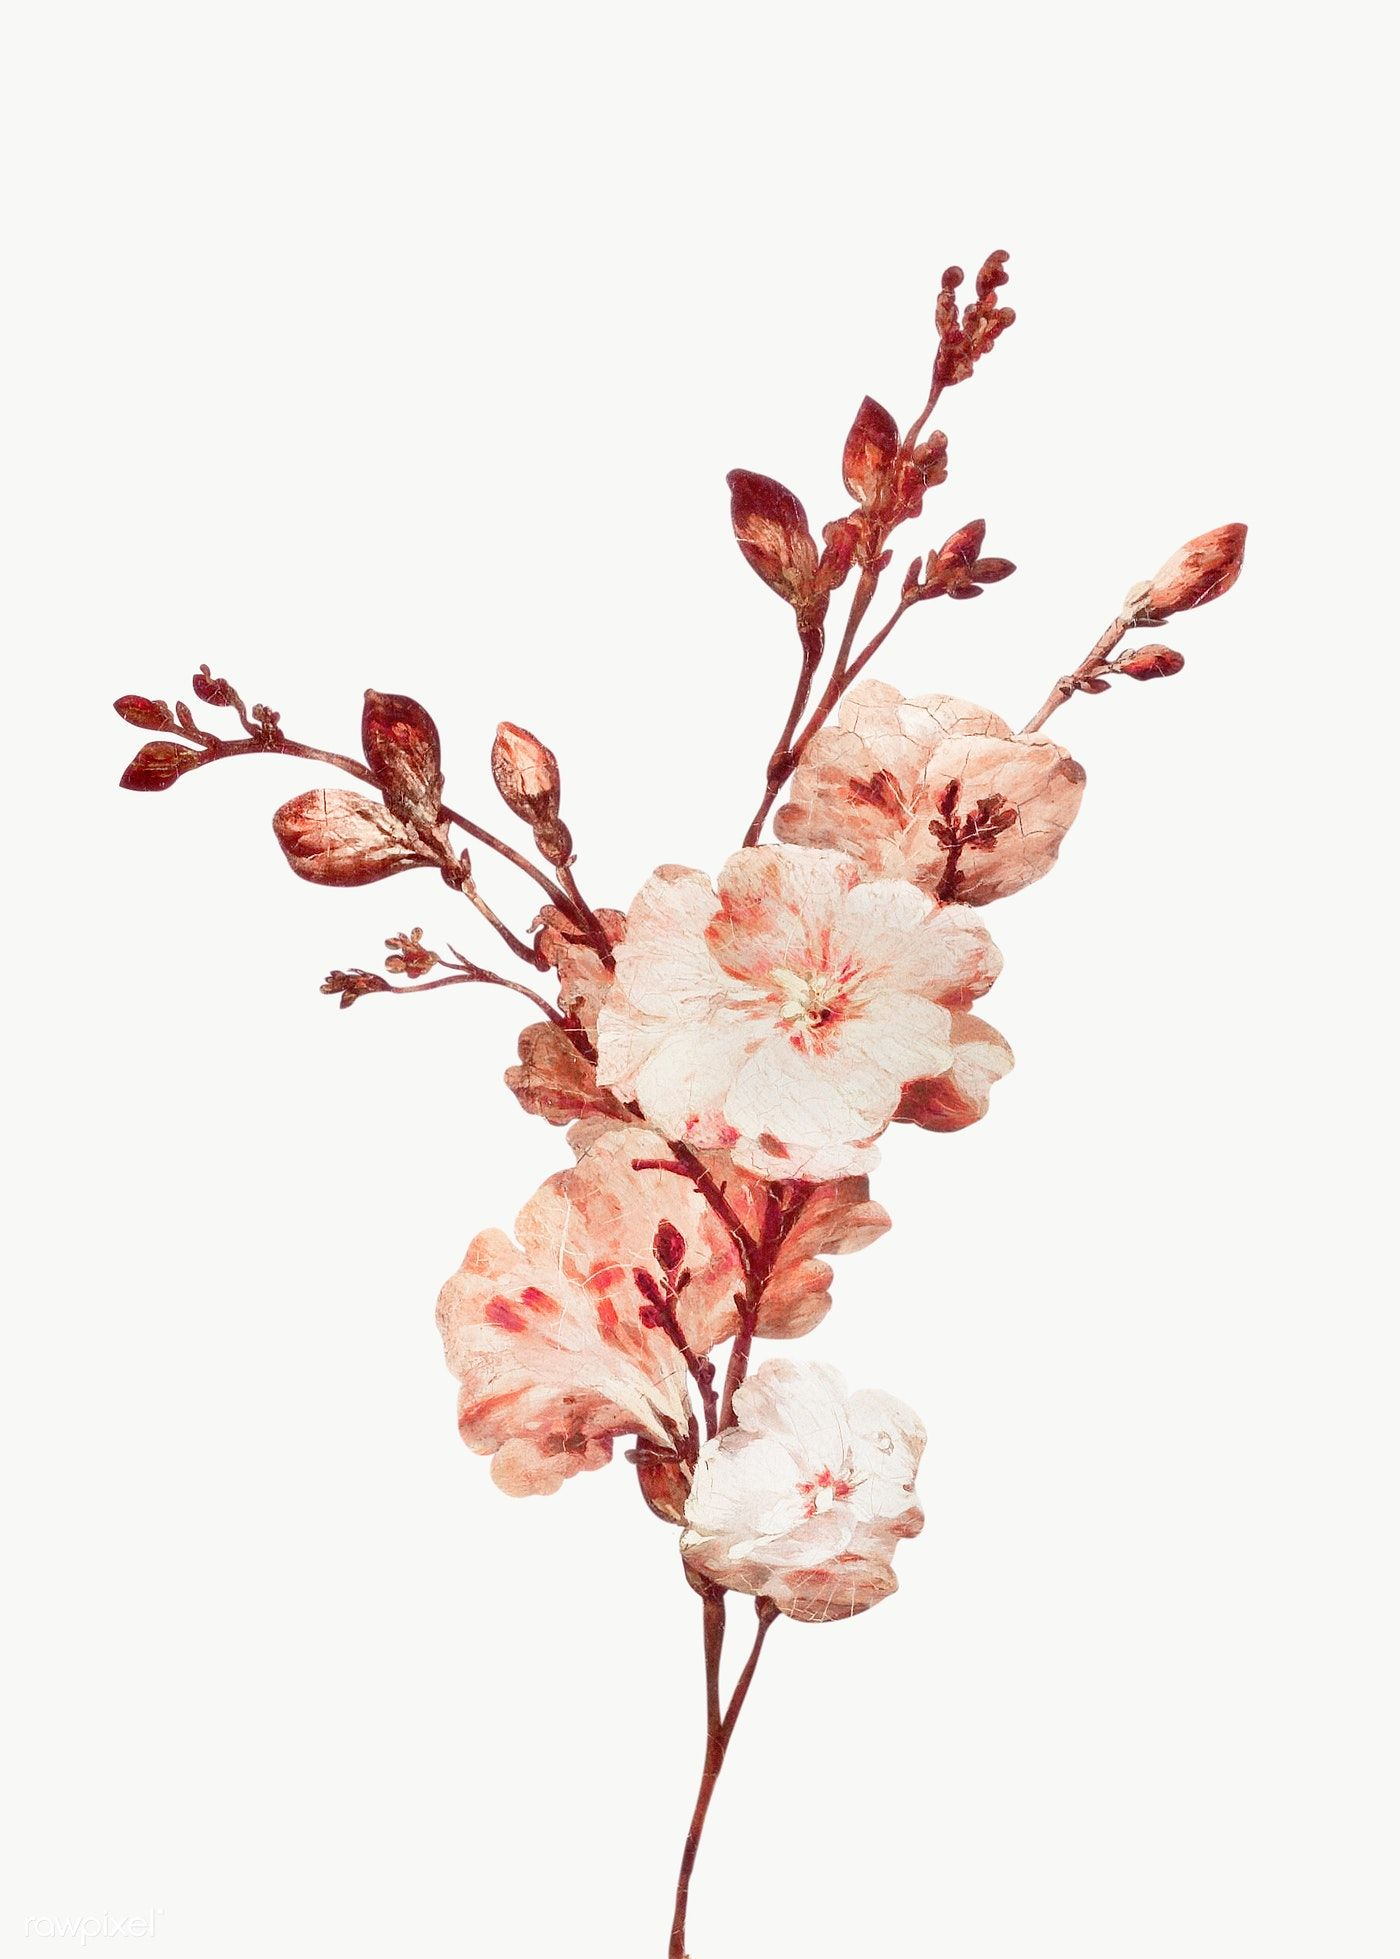 Vintage Bloom Flower Illustration Transparent Png Premium Image By Rawpixel Com Kwanloy In 2020 Flower Illustration Vintage Floral Backgrounds Flower Aesthetic